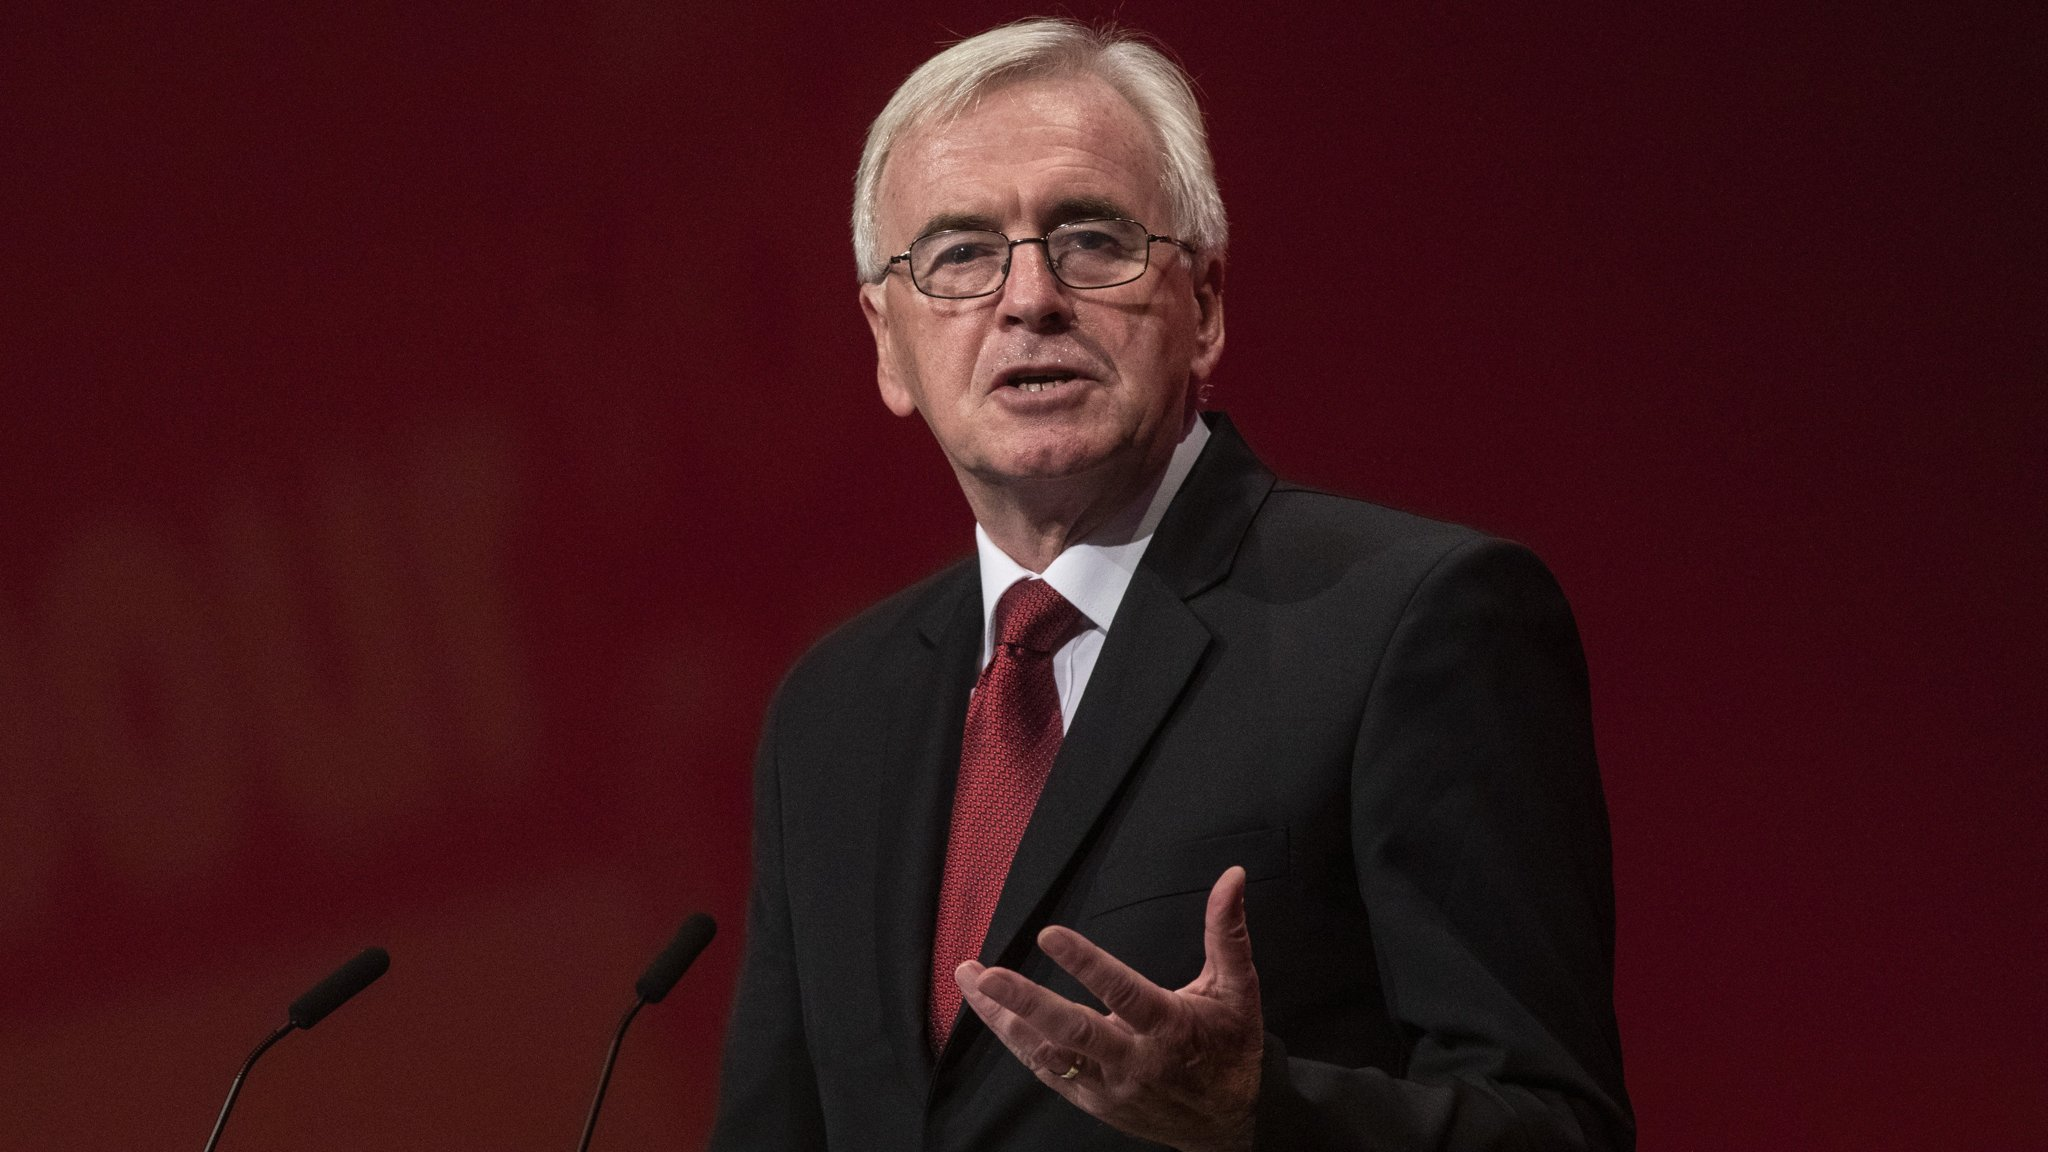 UK Labour party could break the cosy consensus on climate change